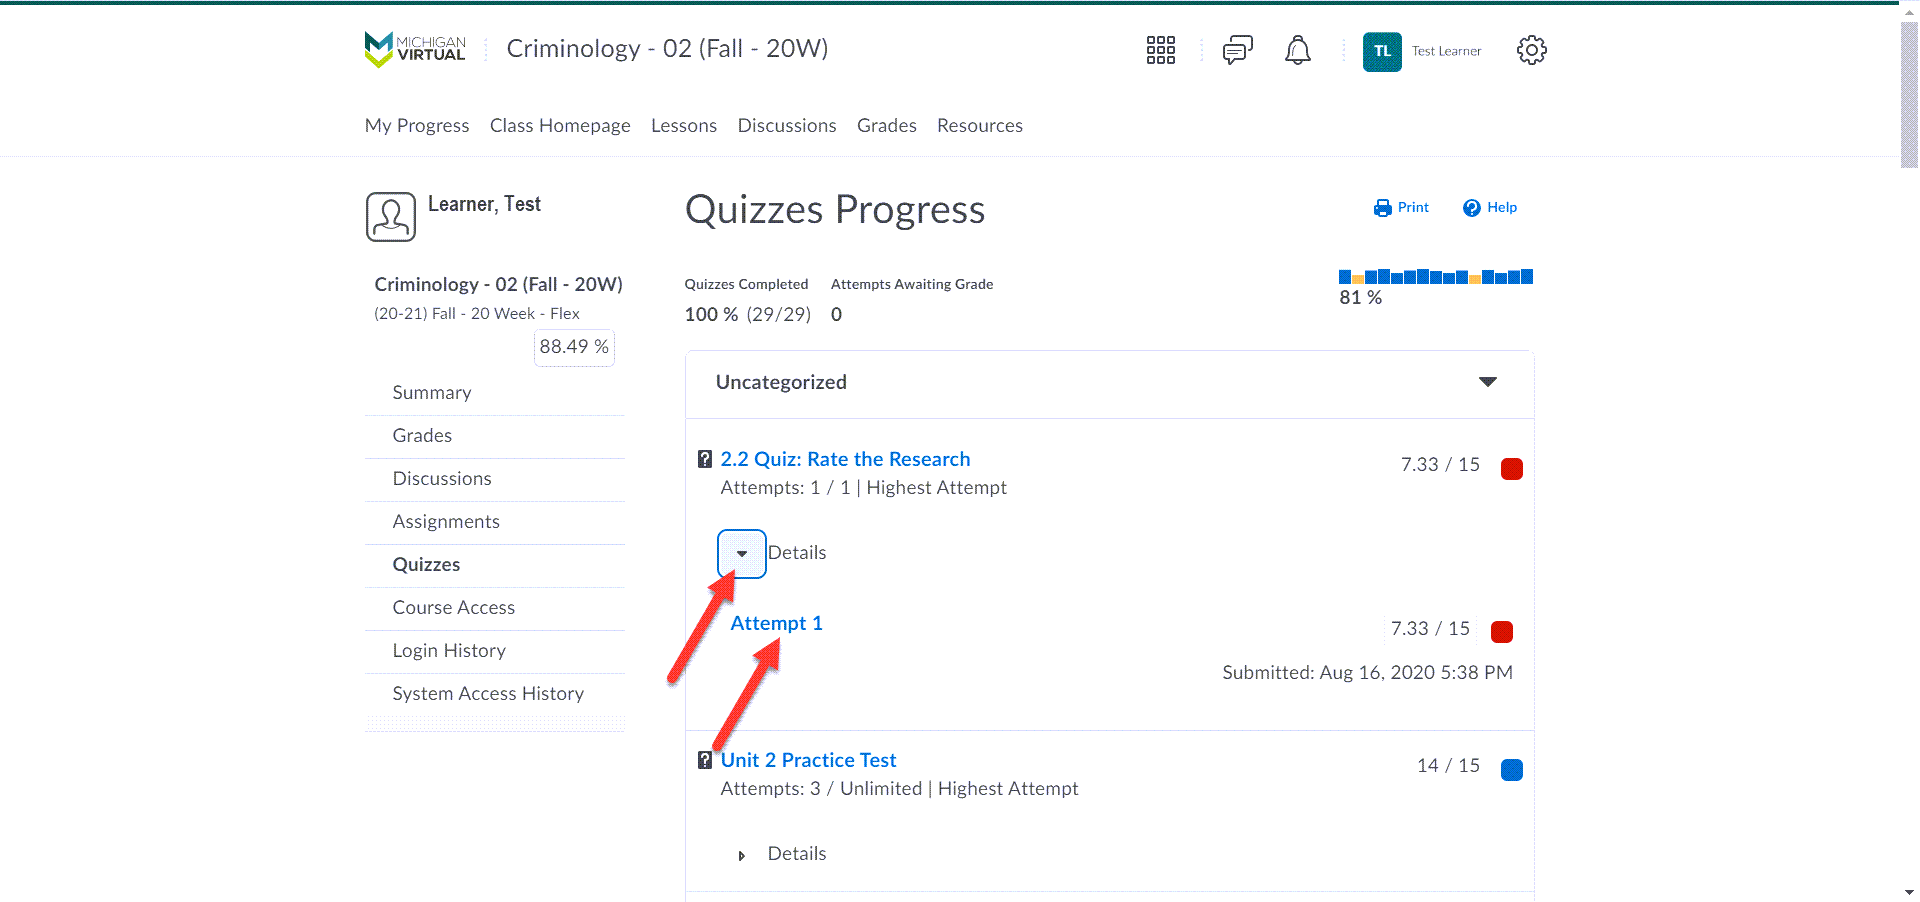 The Quizzes Progress page is shown displaying a table of quizzes/tests within the course. Each item has a score with the Details drop-down. The first quiz details option is expanded to show attempt 1. An arrow points to the details drop-down and to the linked attempt.